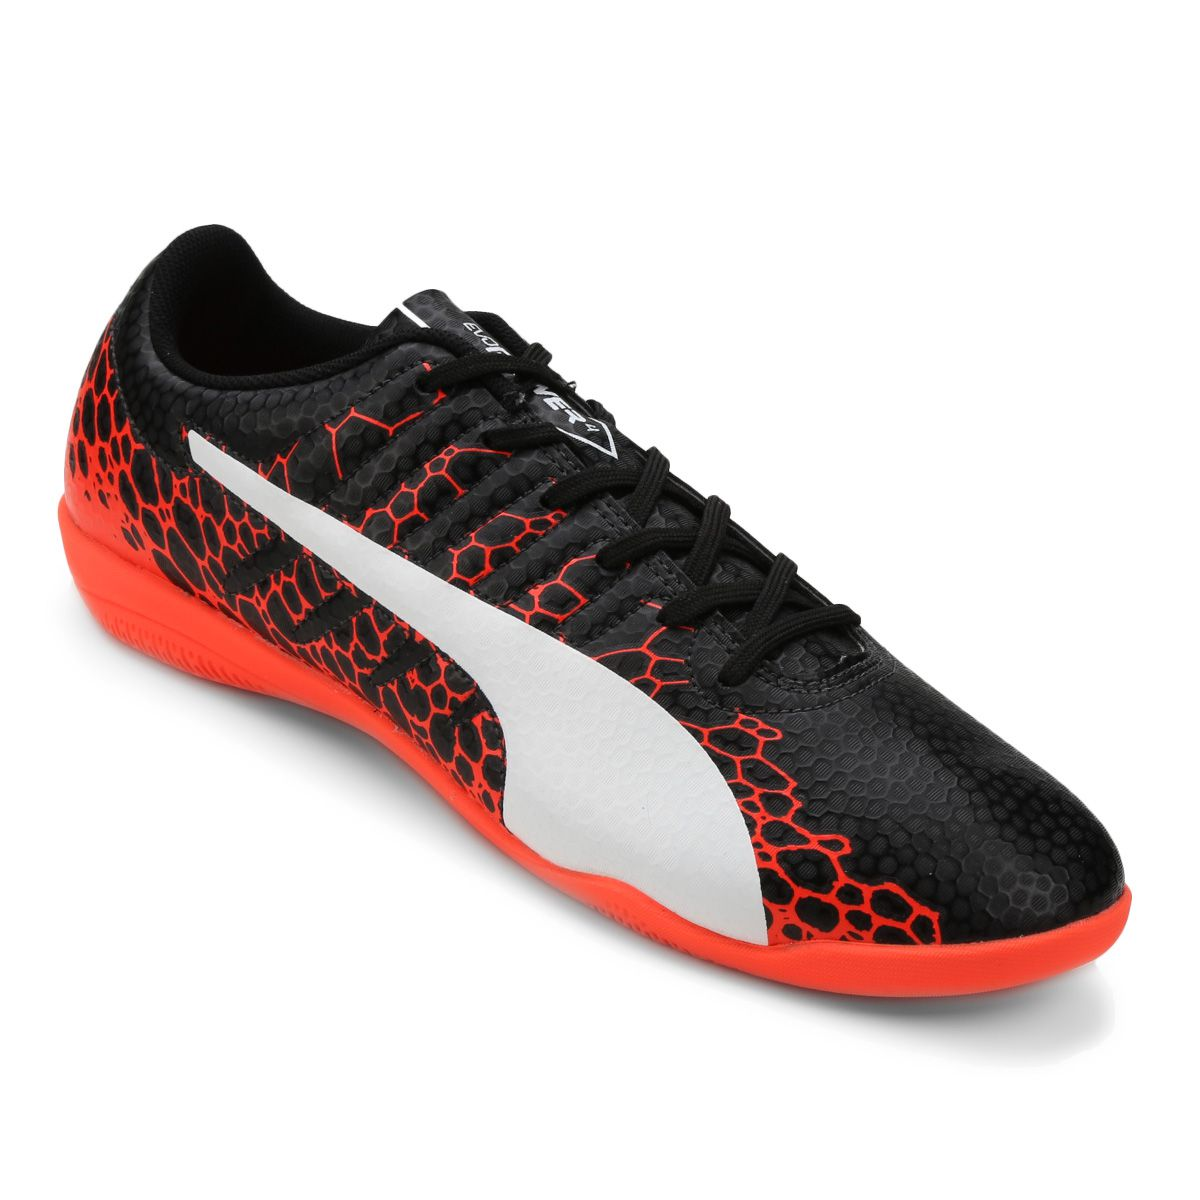 50e312b92 Chuteira Futsal Puma Evopower Vigor 4 Graphic IT Masculina - BRACIA ...